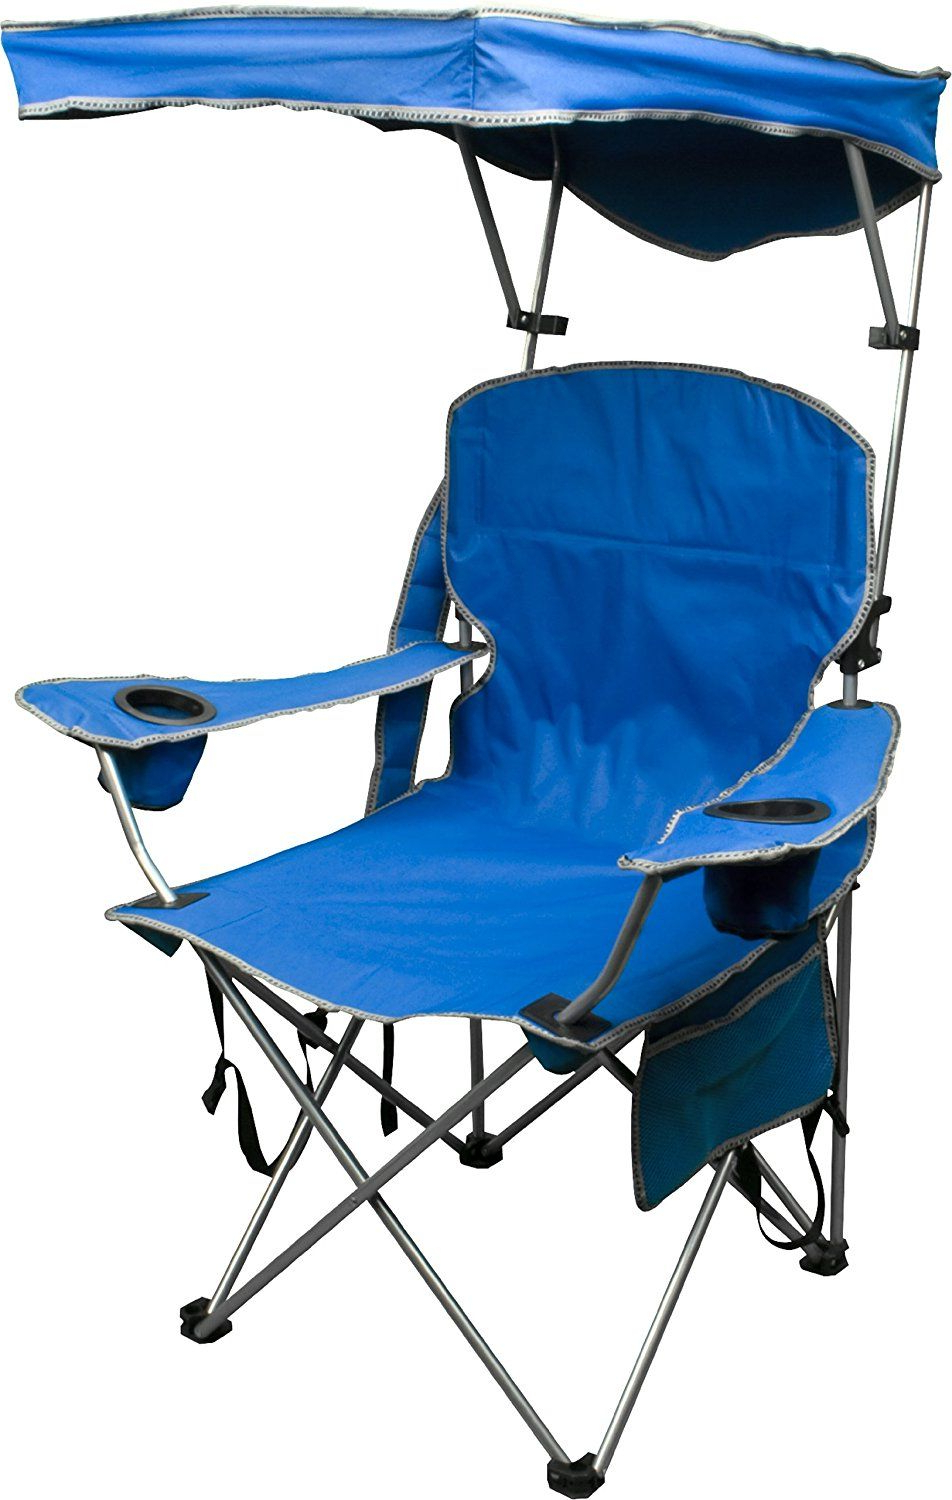 Popular Folding Patio Lounge Beach Chairs With Canopy Within Quik Shade Adjustable Canopy Folding Camp Chair (View 3 of 25)